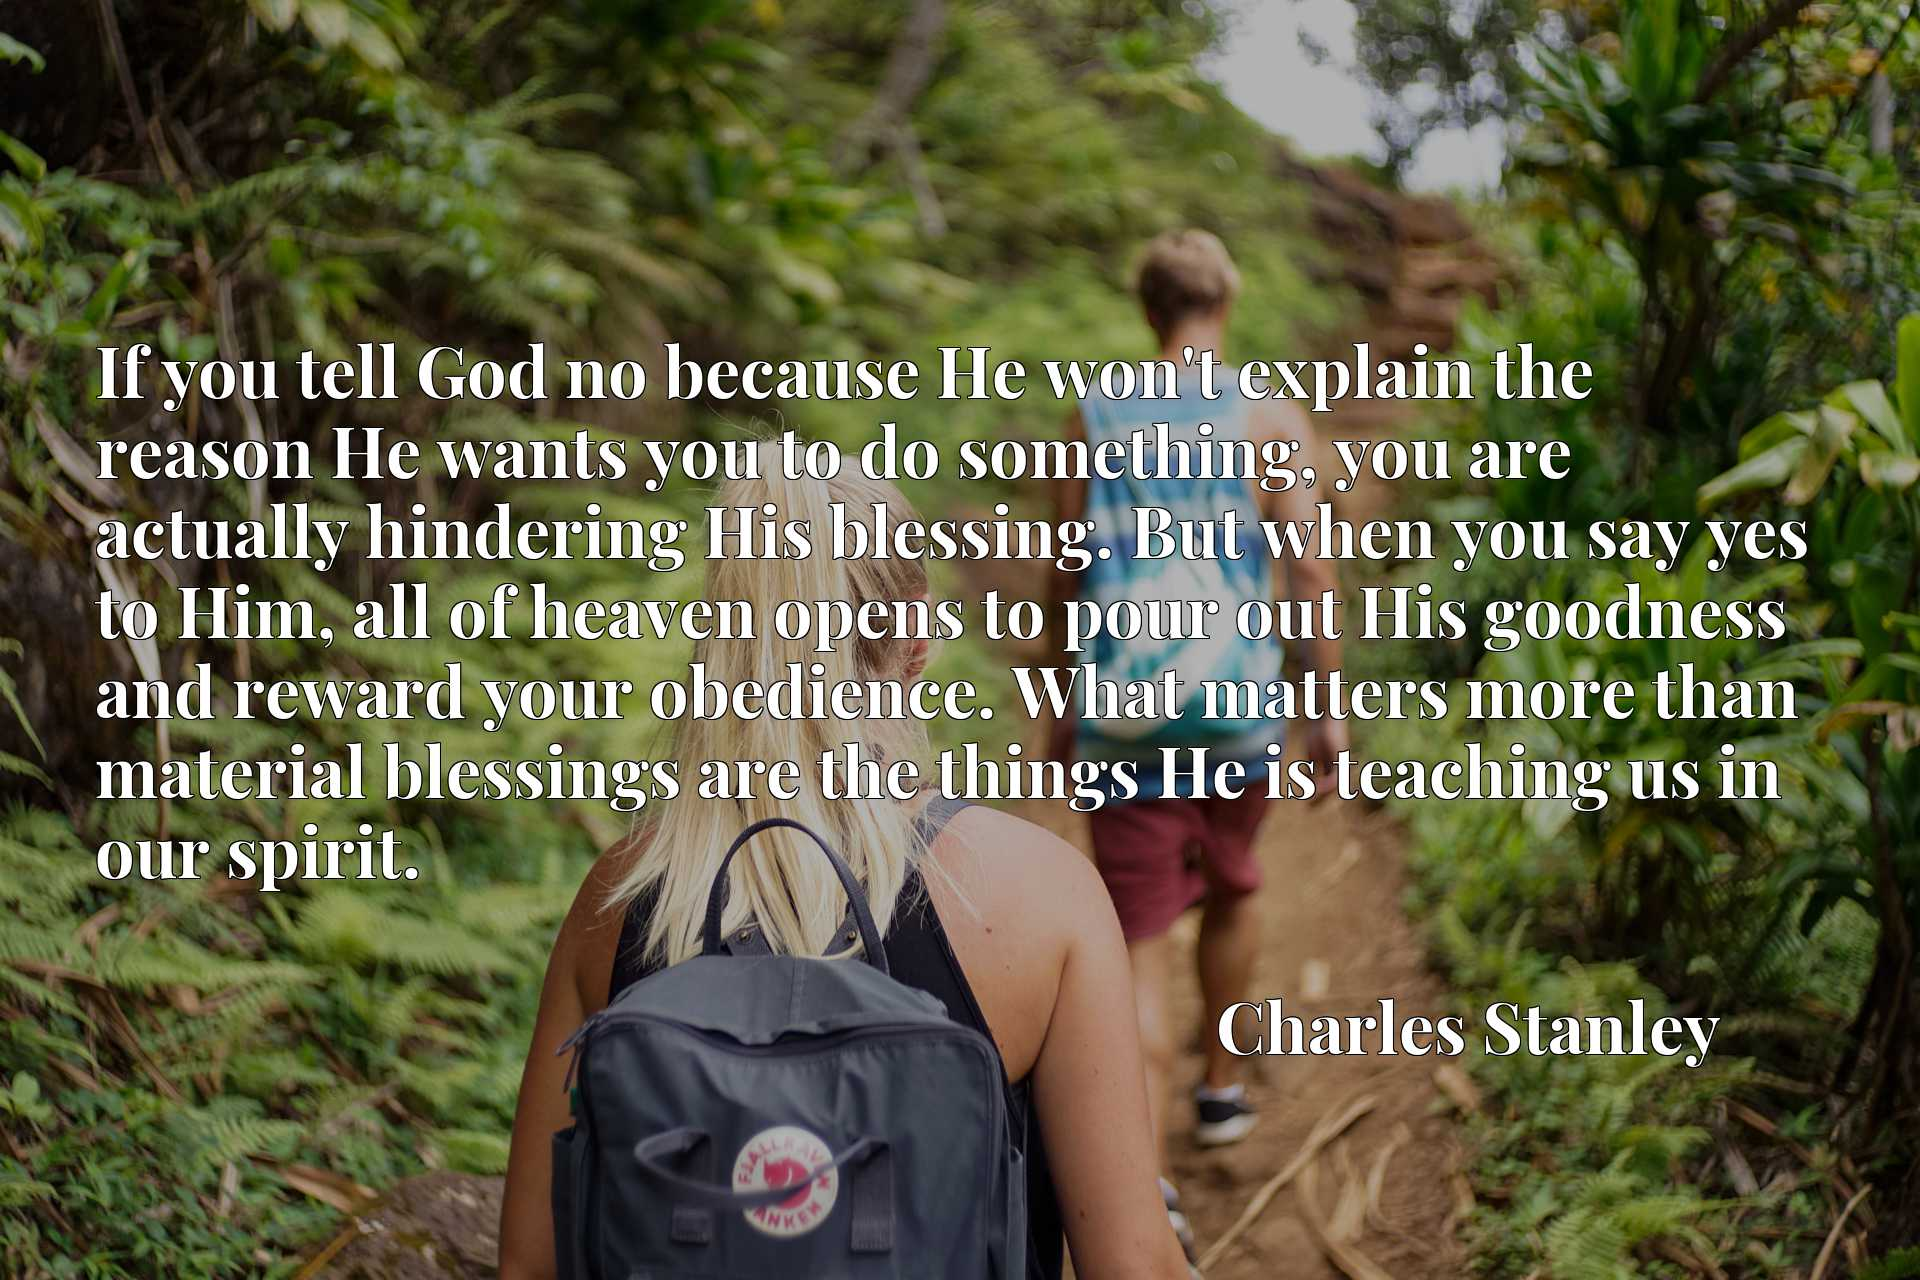 If you tell God no because He won't explain the reason He wants you to do something, you are actually hindering His blessing. But when you say yes to Him, all of heaven opens to pour out His goodness and reward your obedience. What matters more than material blessings are the things He is teaching us in our spirit.